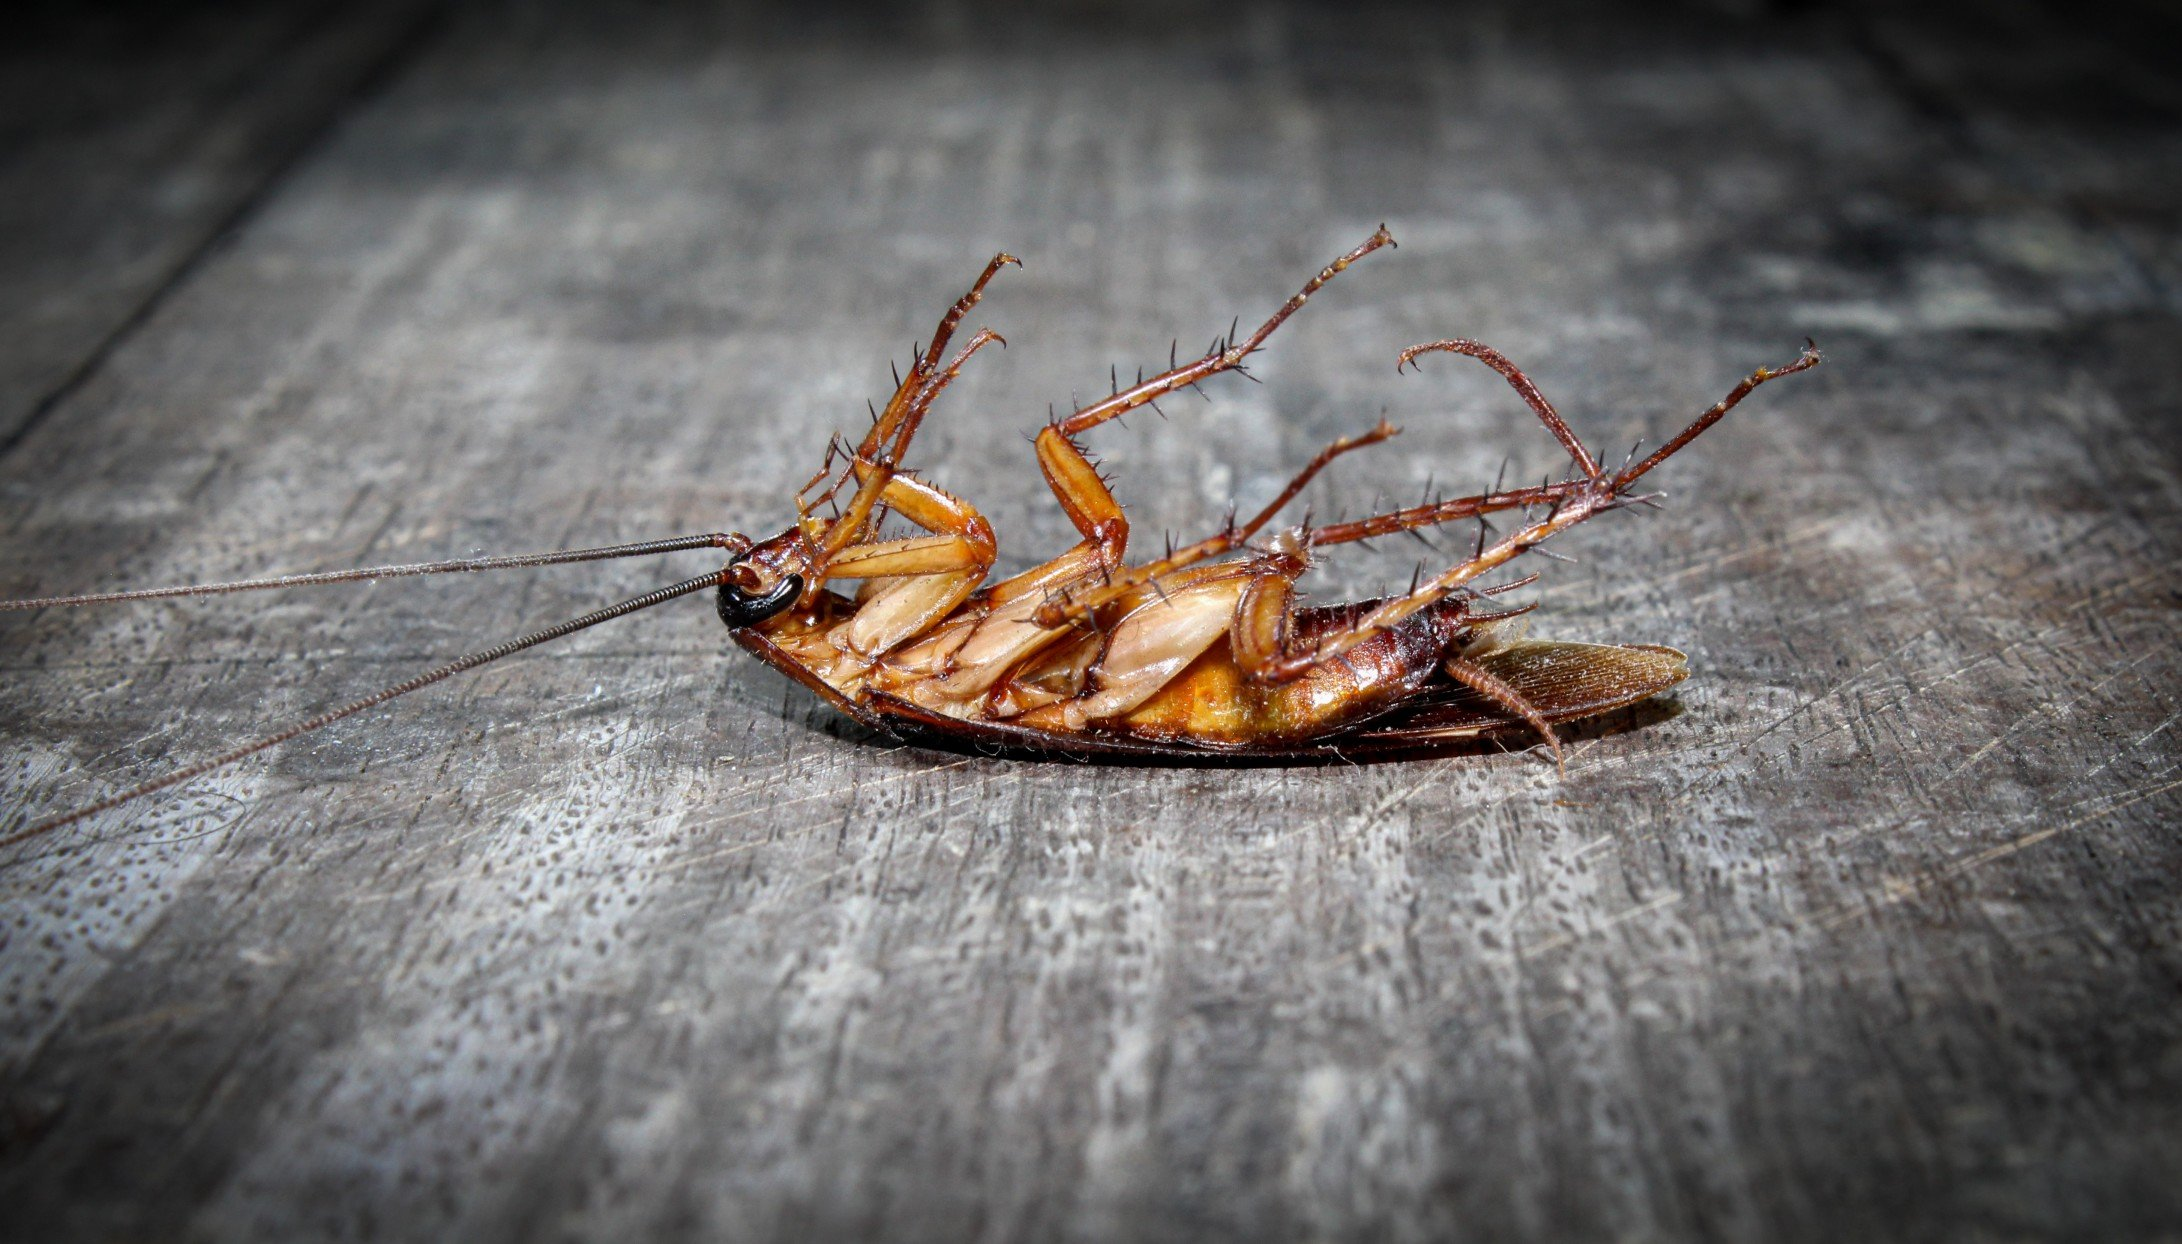 roaches-lie-dead-on-wooden-floor-dead-cockroach-close-up-face-close-up-roaches-antenna-background_t20_4bdlea